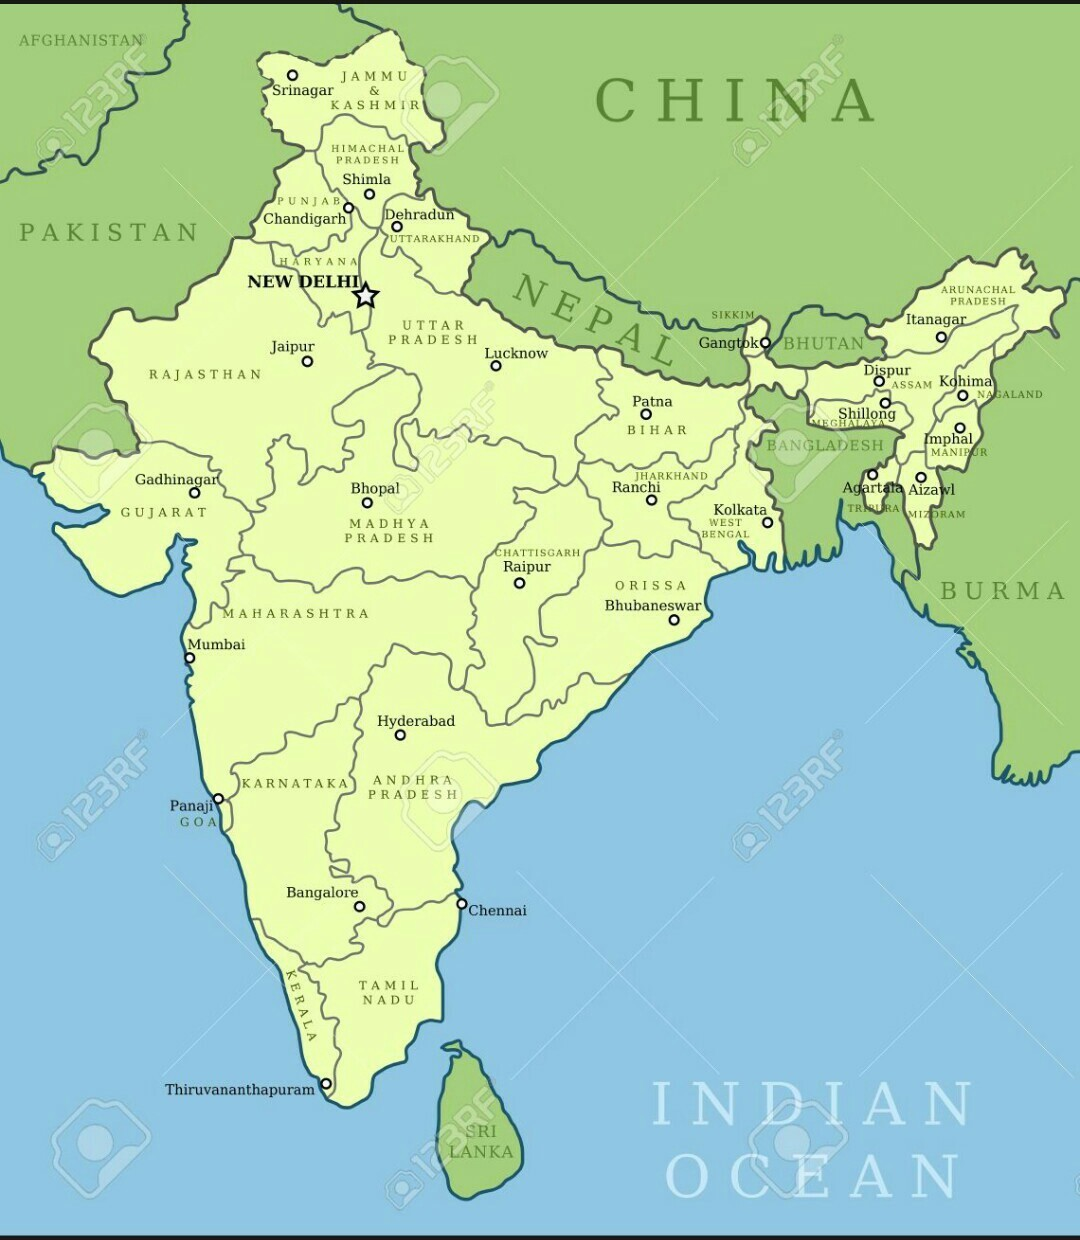 Draw A Political Map Of India And Colour The Different States With